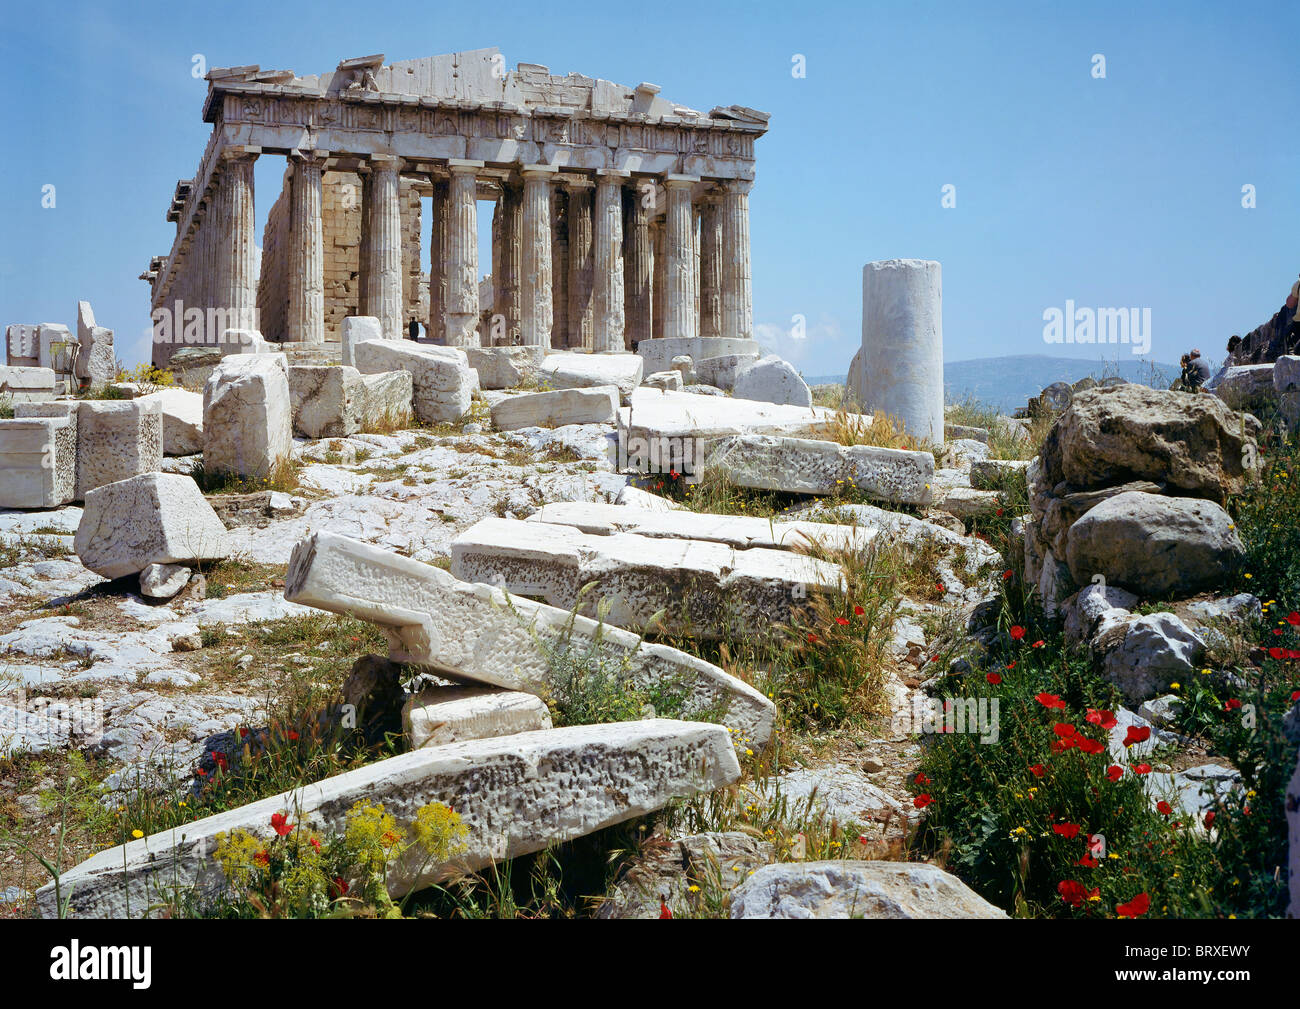 Parthenon, Acropolis, Athens, Greece, Europe - Stock Image